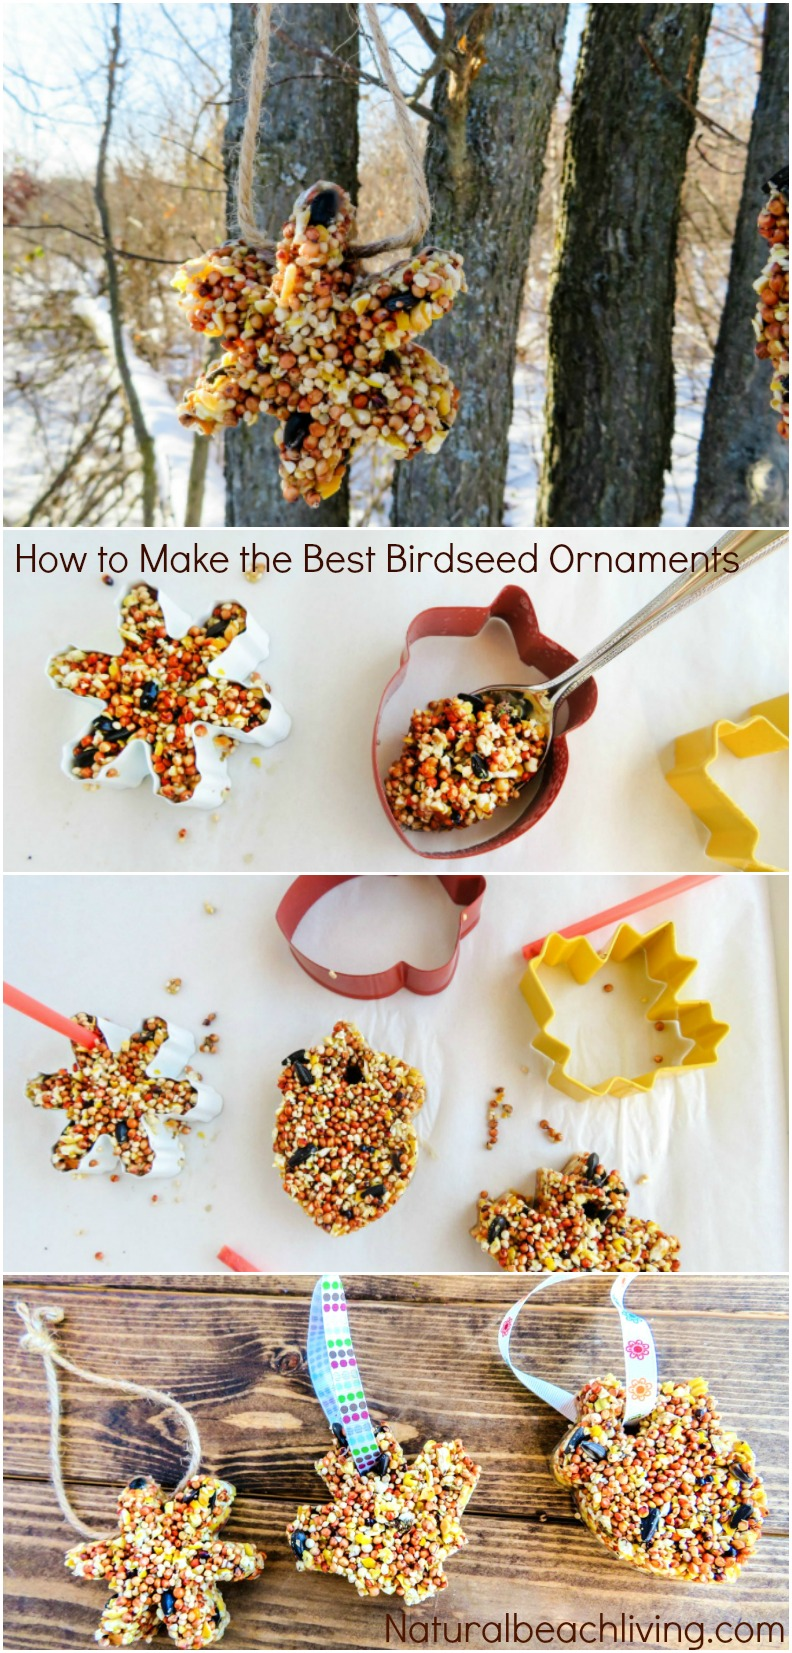 How to Make Apple Birdseed Homemade Bird Feeders, Apple Bird Feeders, Easy Homemade Bird Feeders, Great Fall Craft for Kids, Homemade Bird Treats